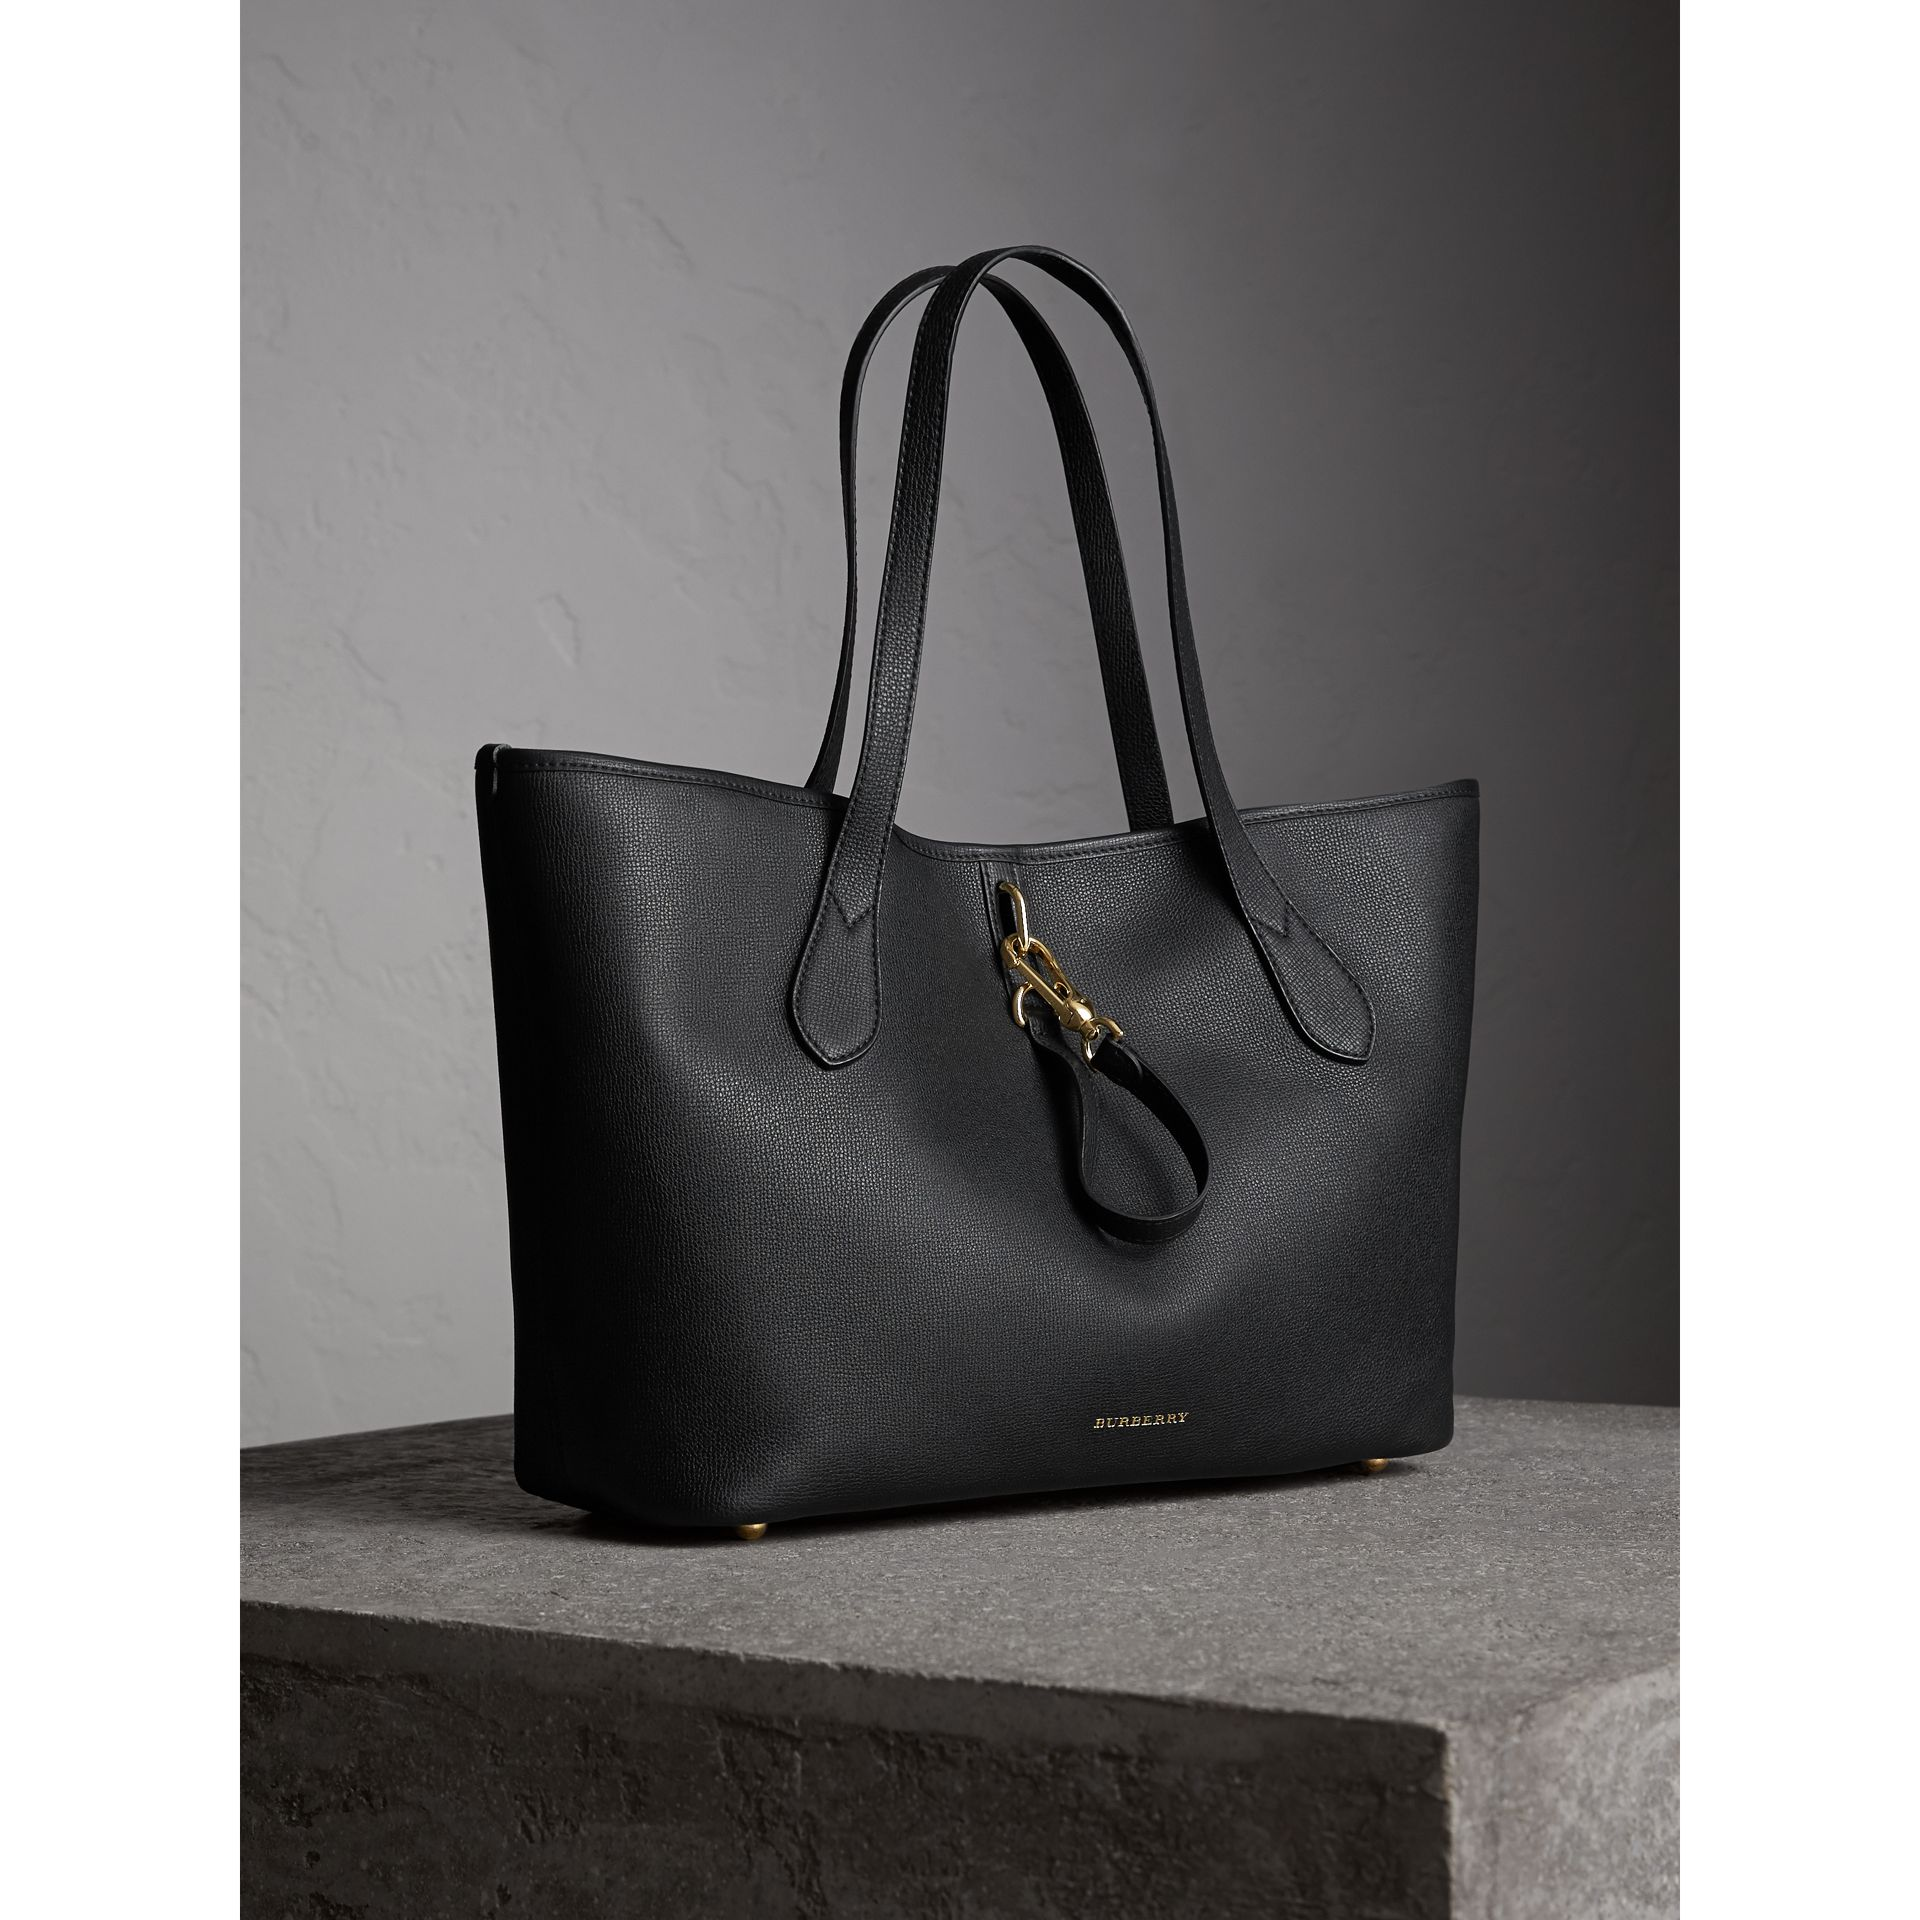 Medium Grainy Leather Tote Bag in Black - Women | Burberry - gallery image 6